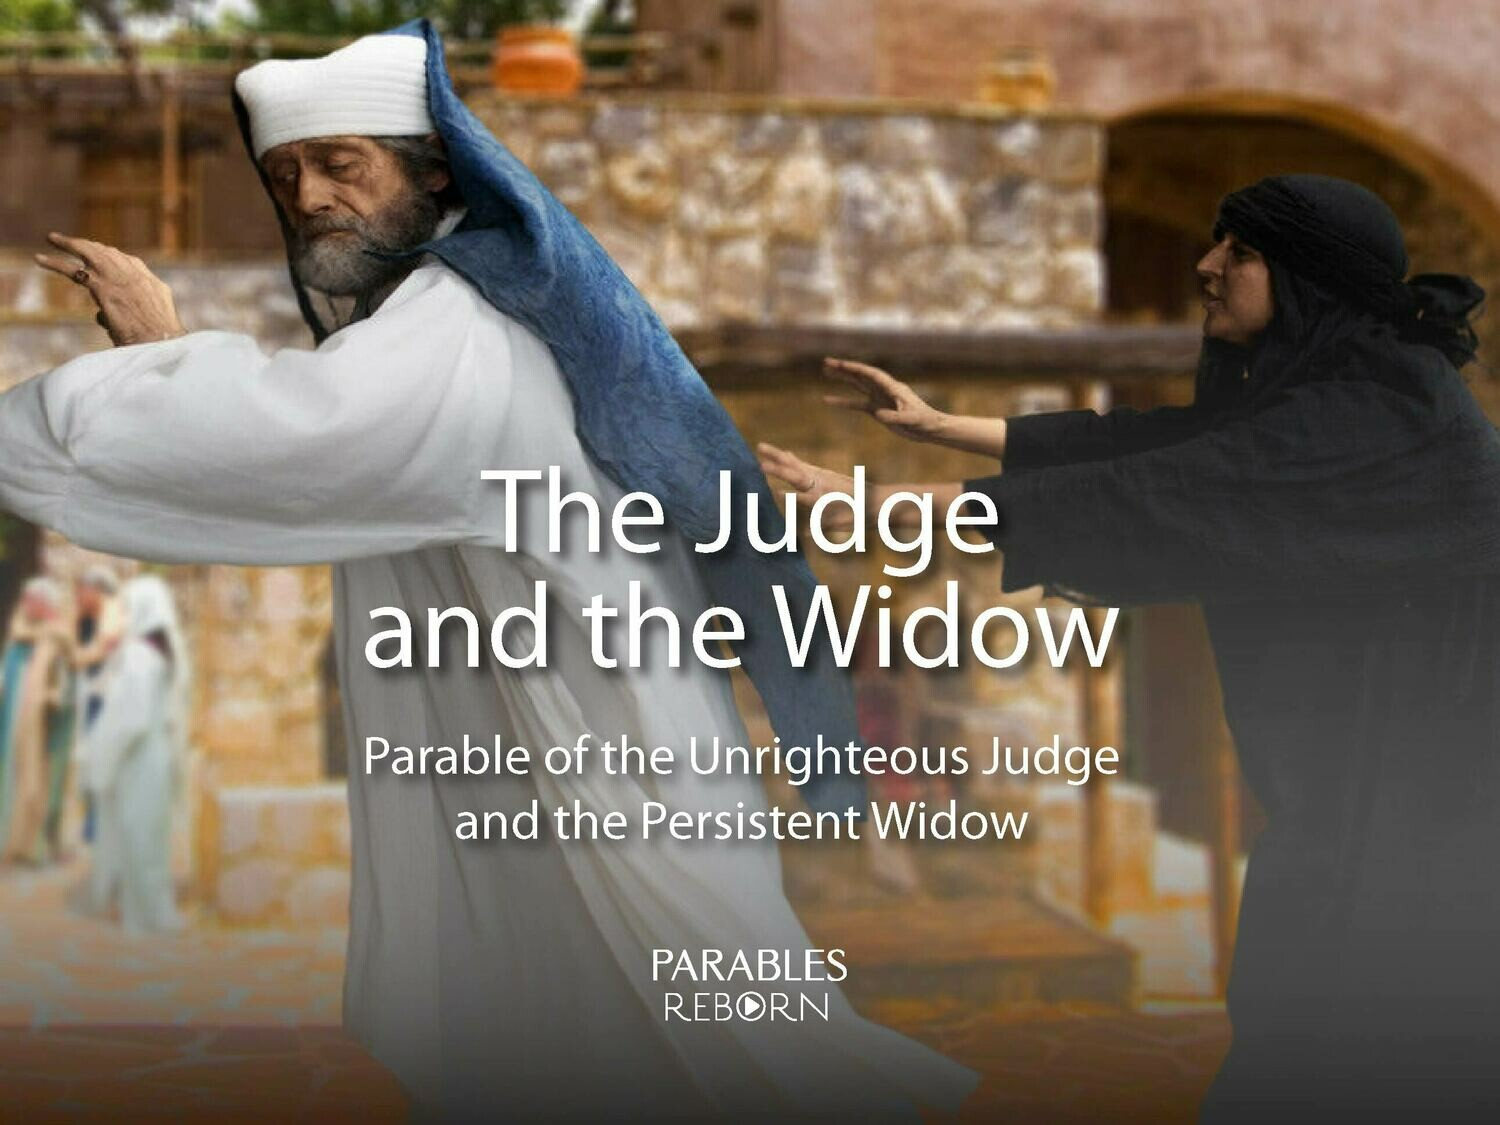 14 Parables Reborn, The Judge and the Widow